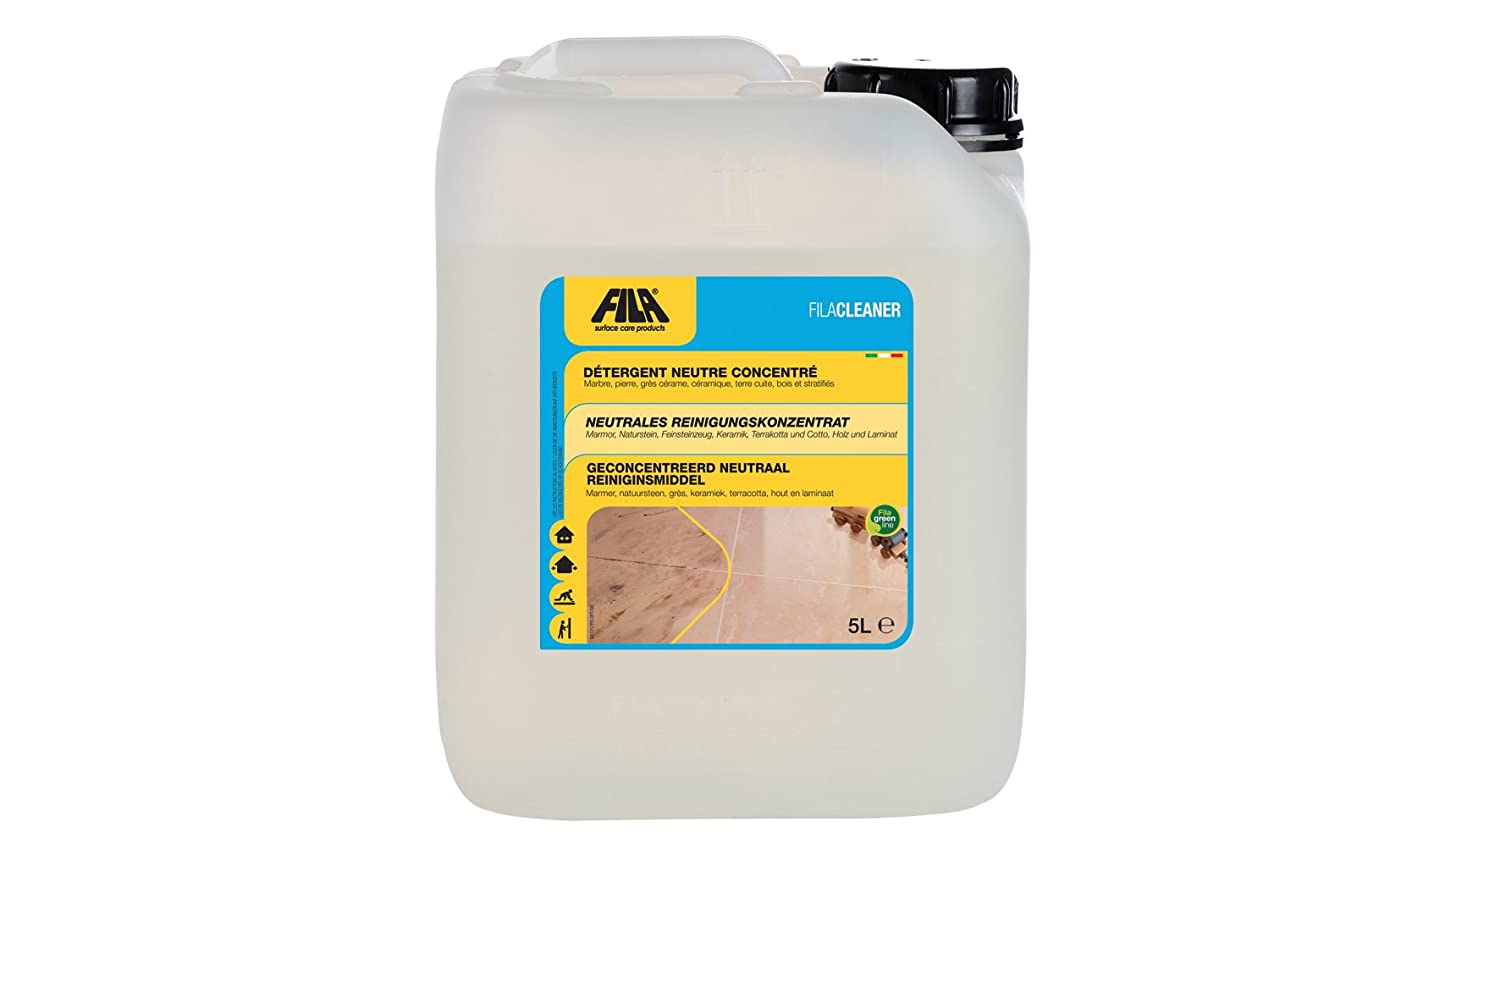 Fila CLEANER Fila Solutions 5 Liter Universal cleaner for terracotta, porcelain, glazed ceramic, clinker, cement, wood, natural stone, granite, agglomerates, tumbled marble, stones and pebbles. Fila Industria Chimica Spa